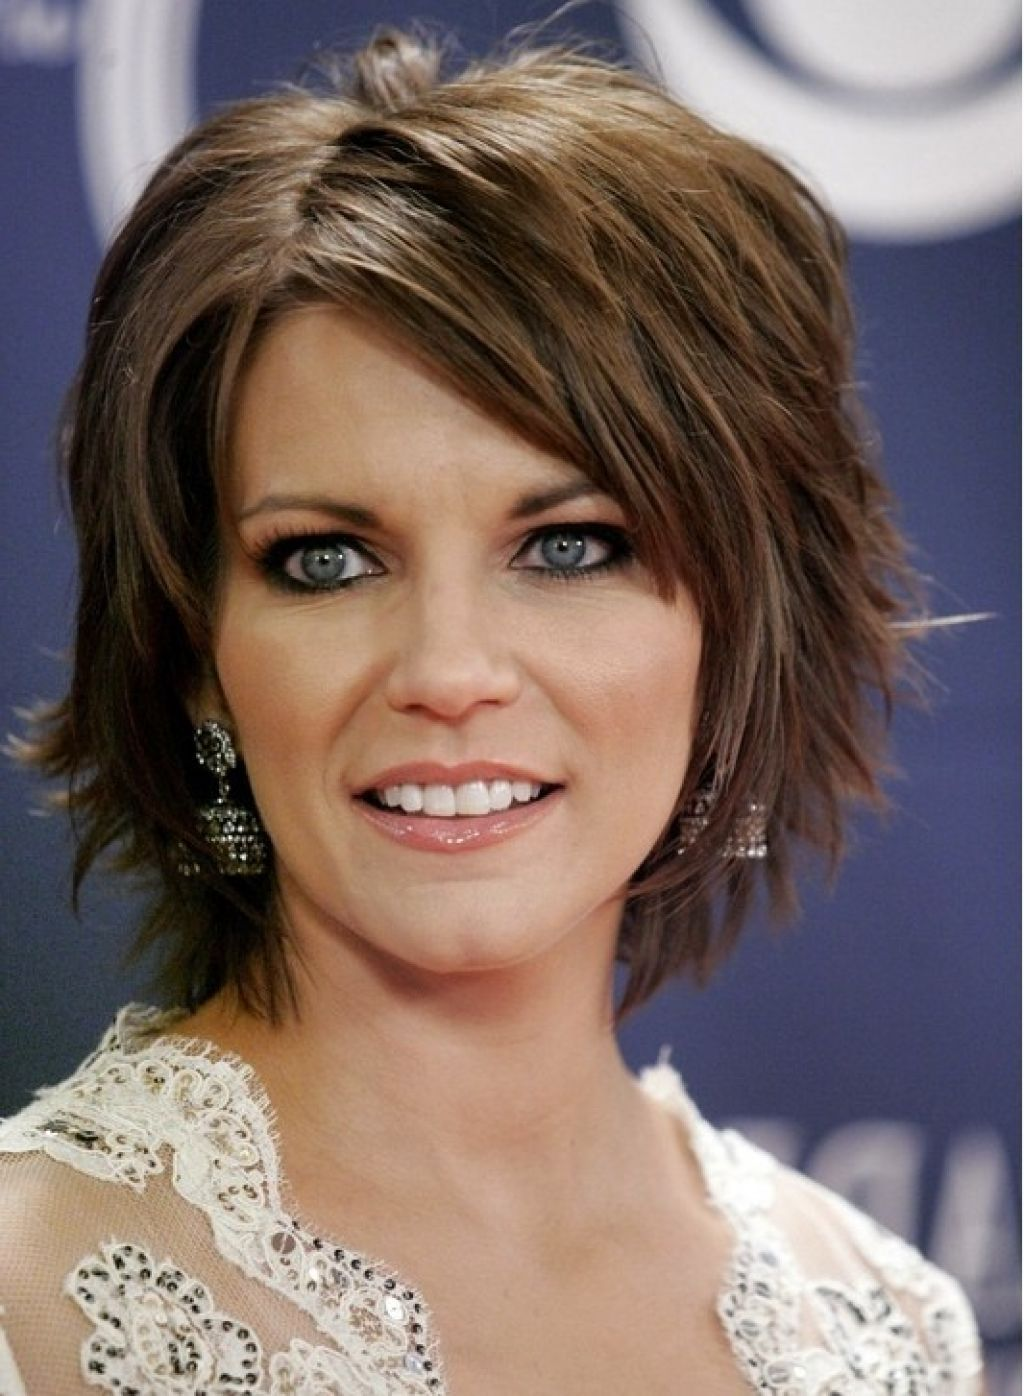 Short Layered Bob Hairstyle | Pictures gallery of Layered Short Bob ...